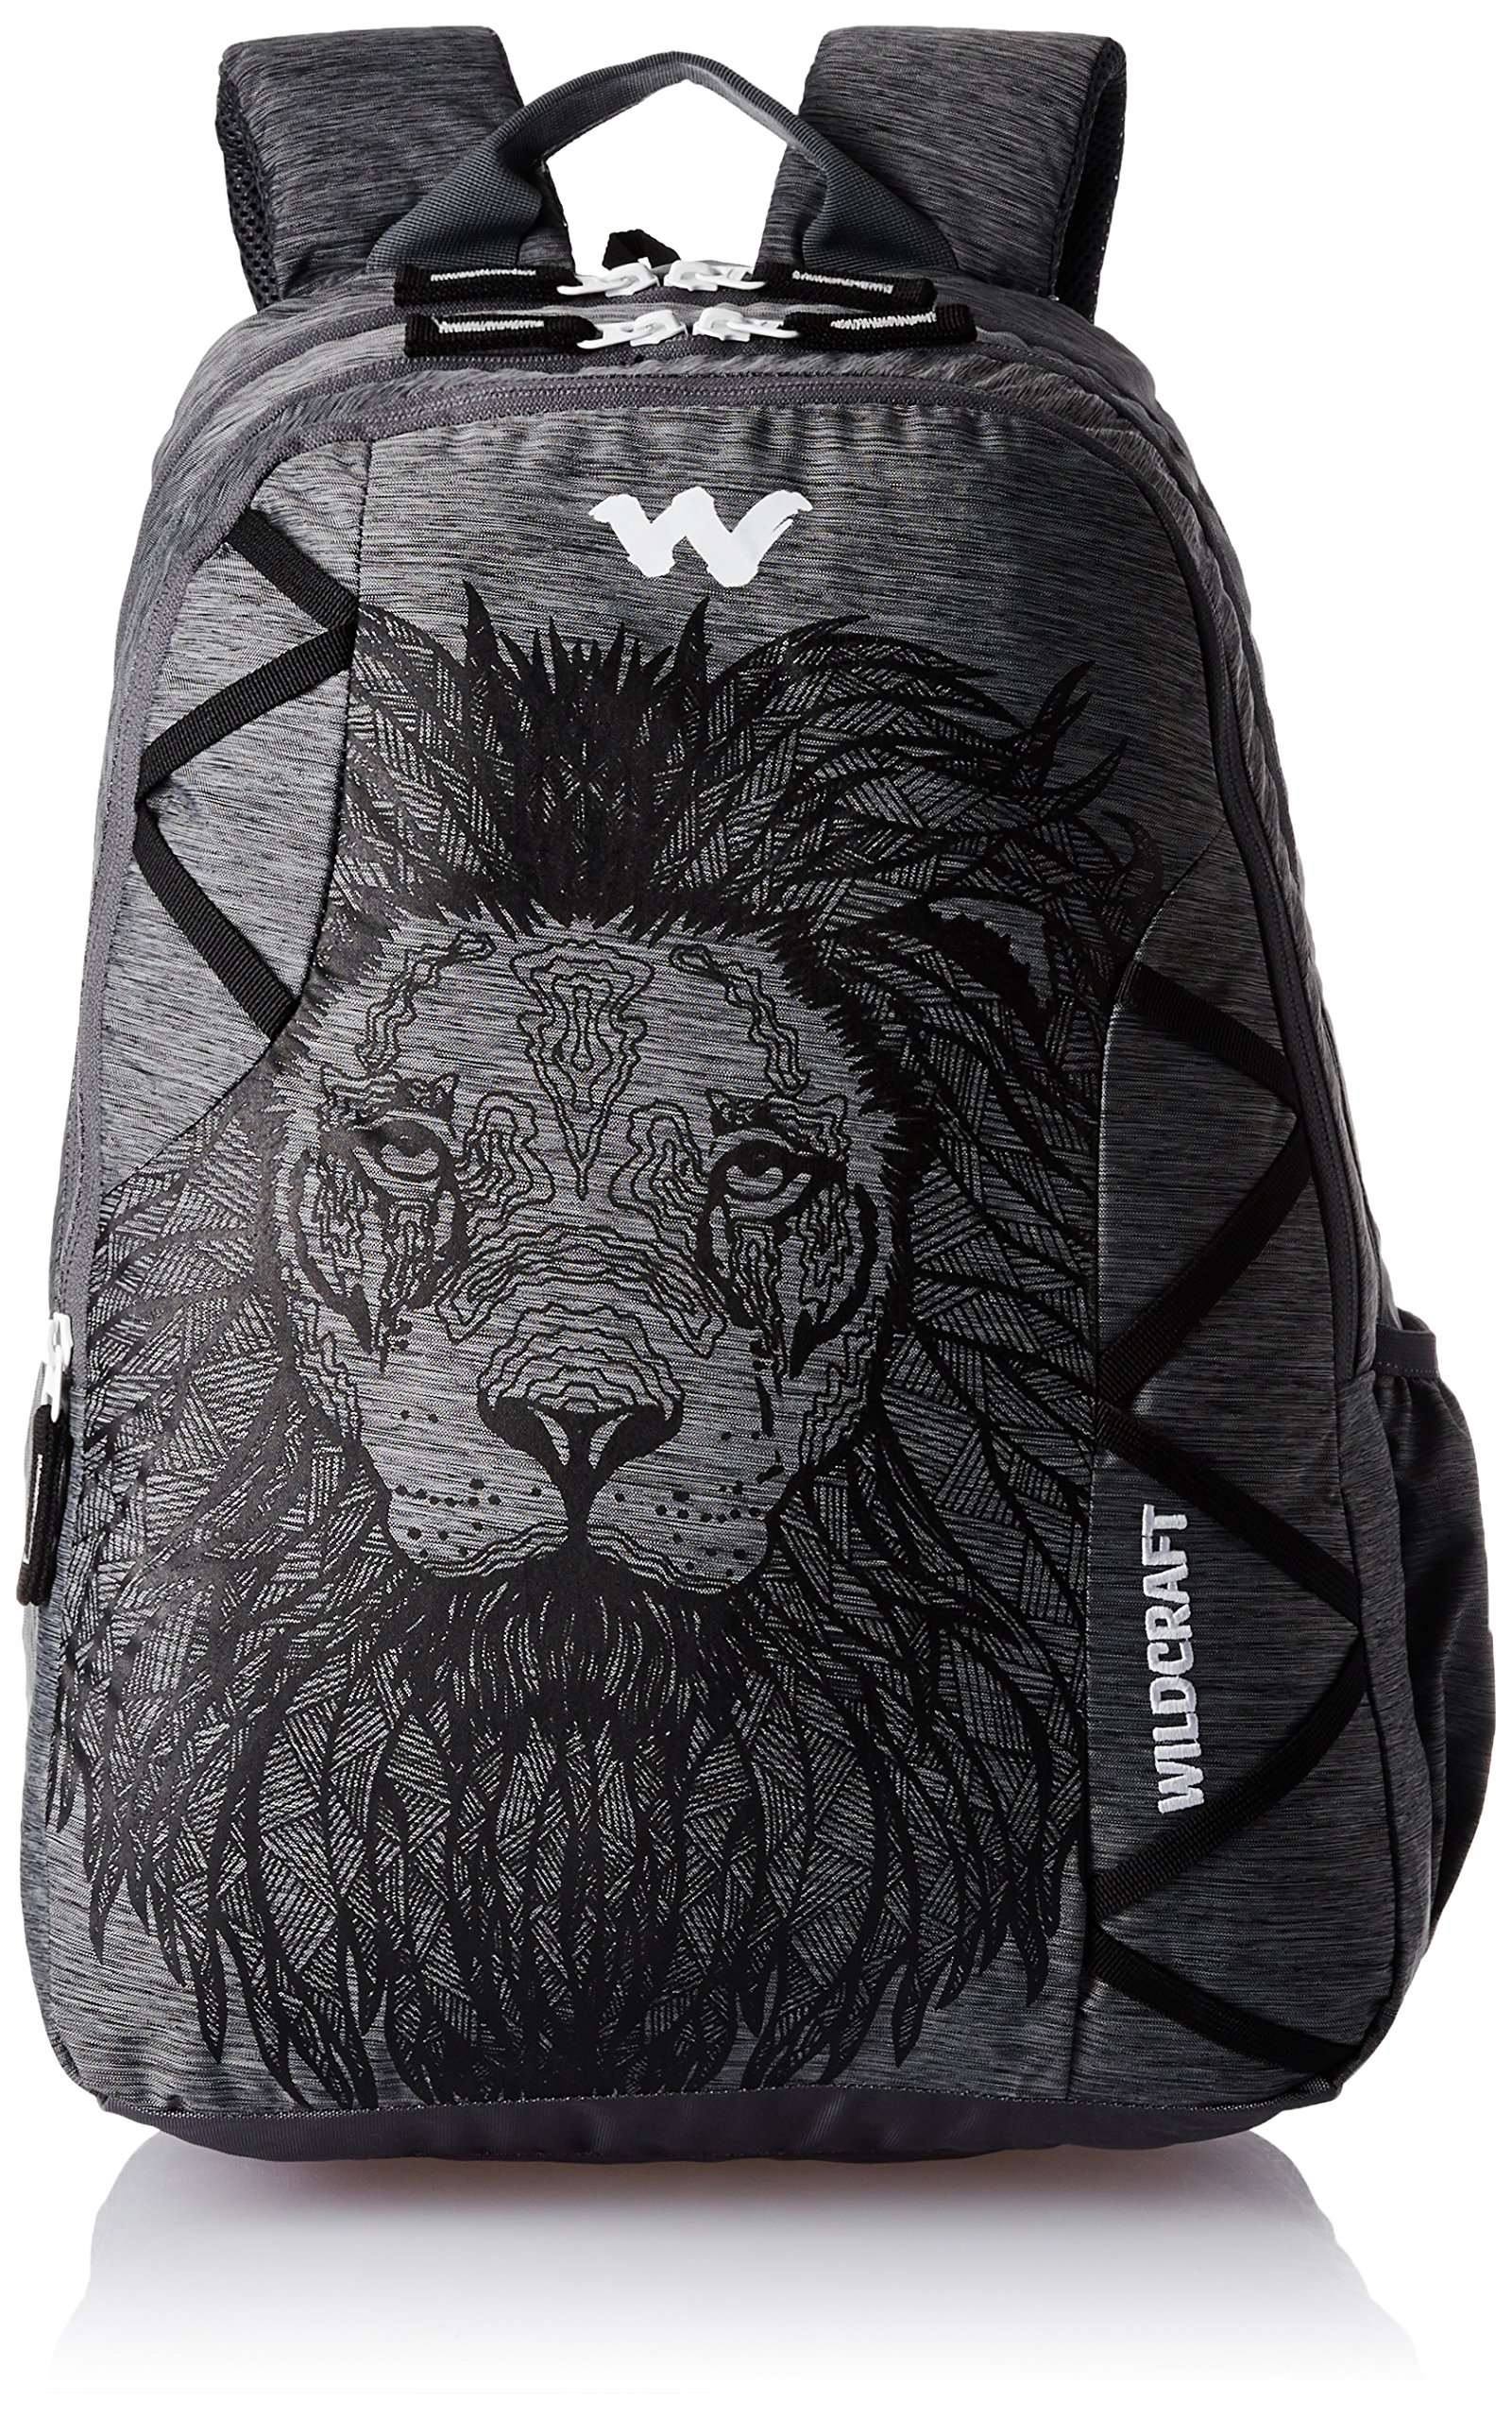 Wildcraft 35 Ltrs Black and Mel Backpack (WC 5 Dare) product image